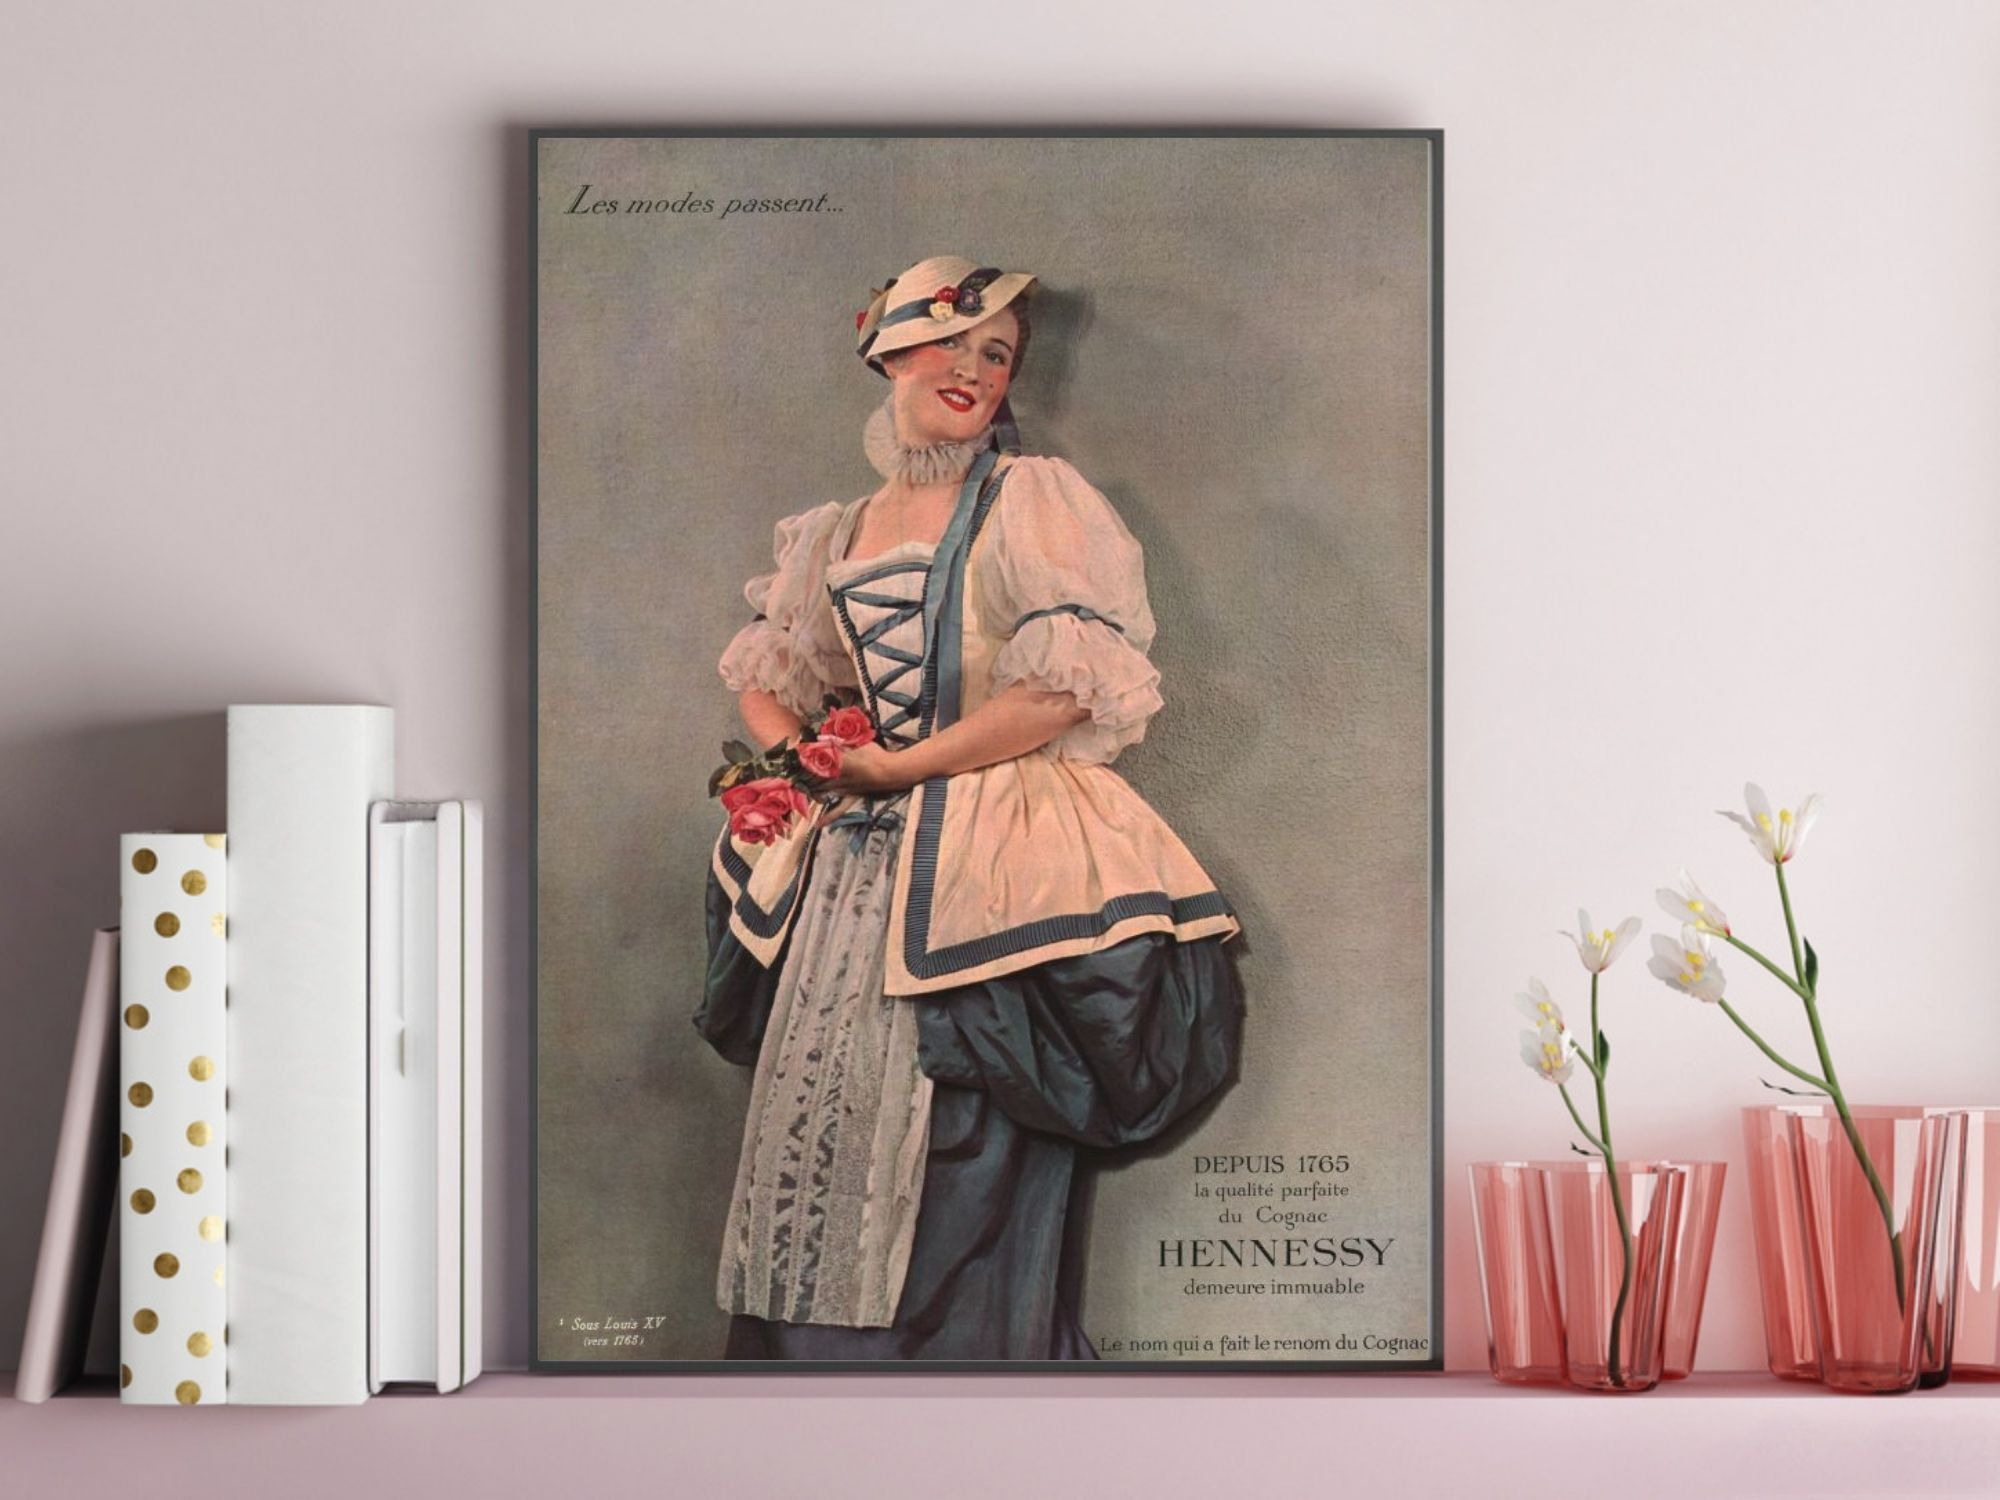 Cognac Hennessy Tear Sheet Vintage Poster 1935 French Lady Illustration Print Hennessy Memorabilia Drink Poster Wall In 2021 Decal Wall Art Hennessy Vintage Posters